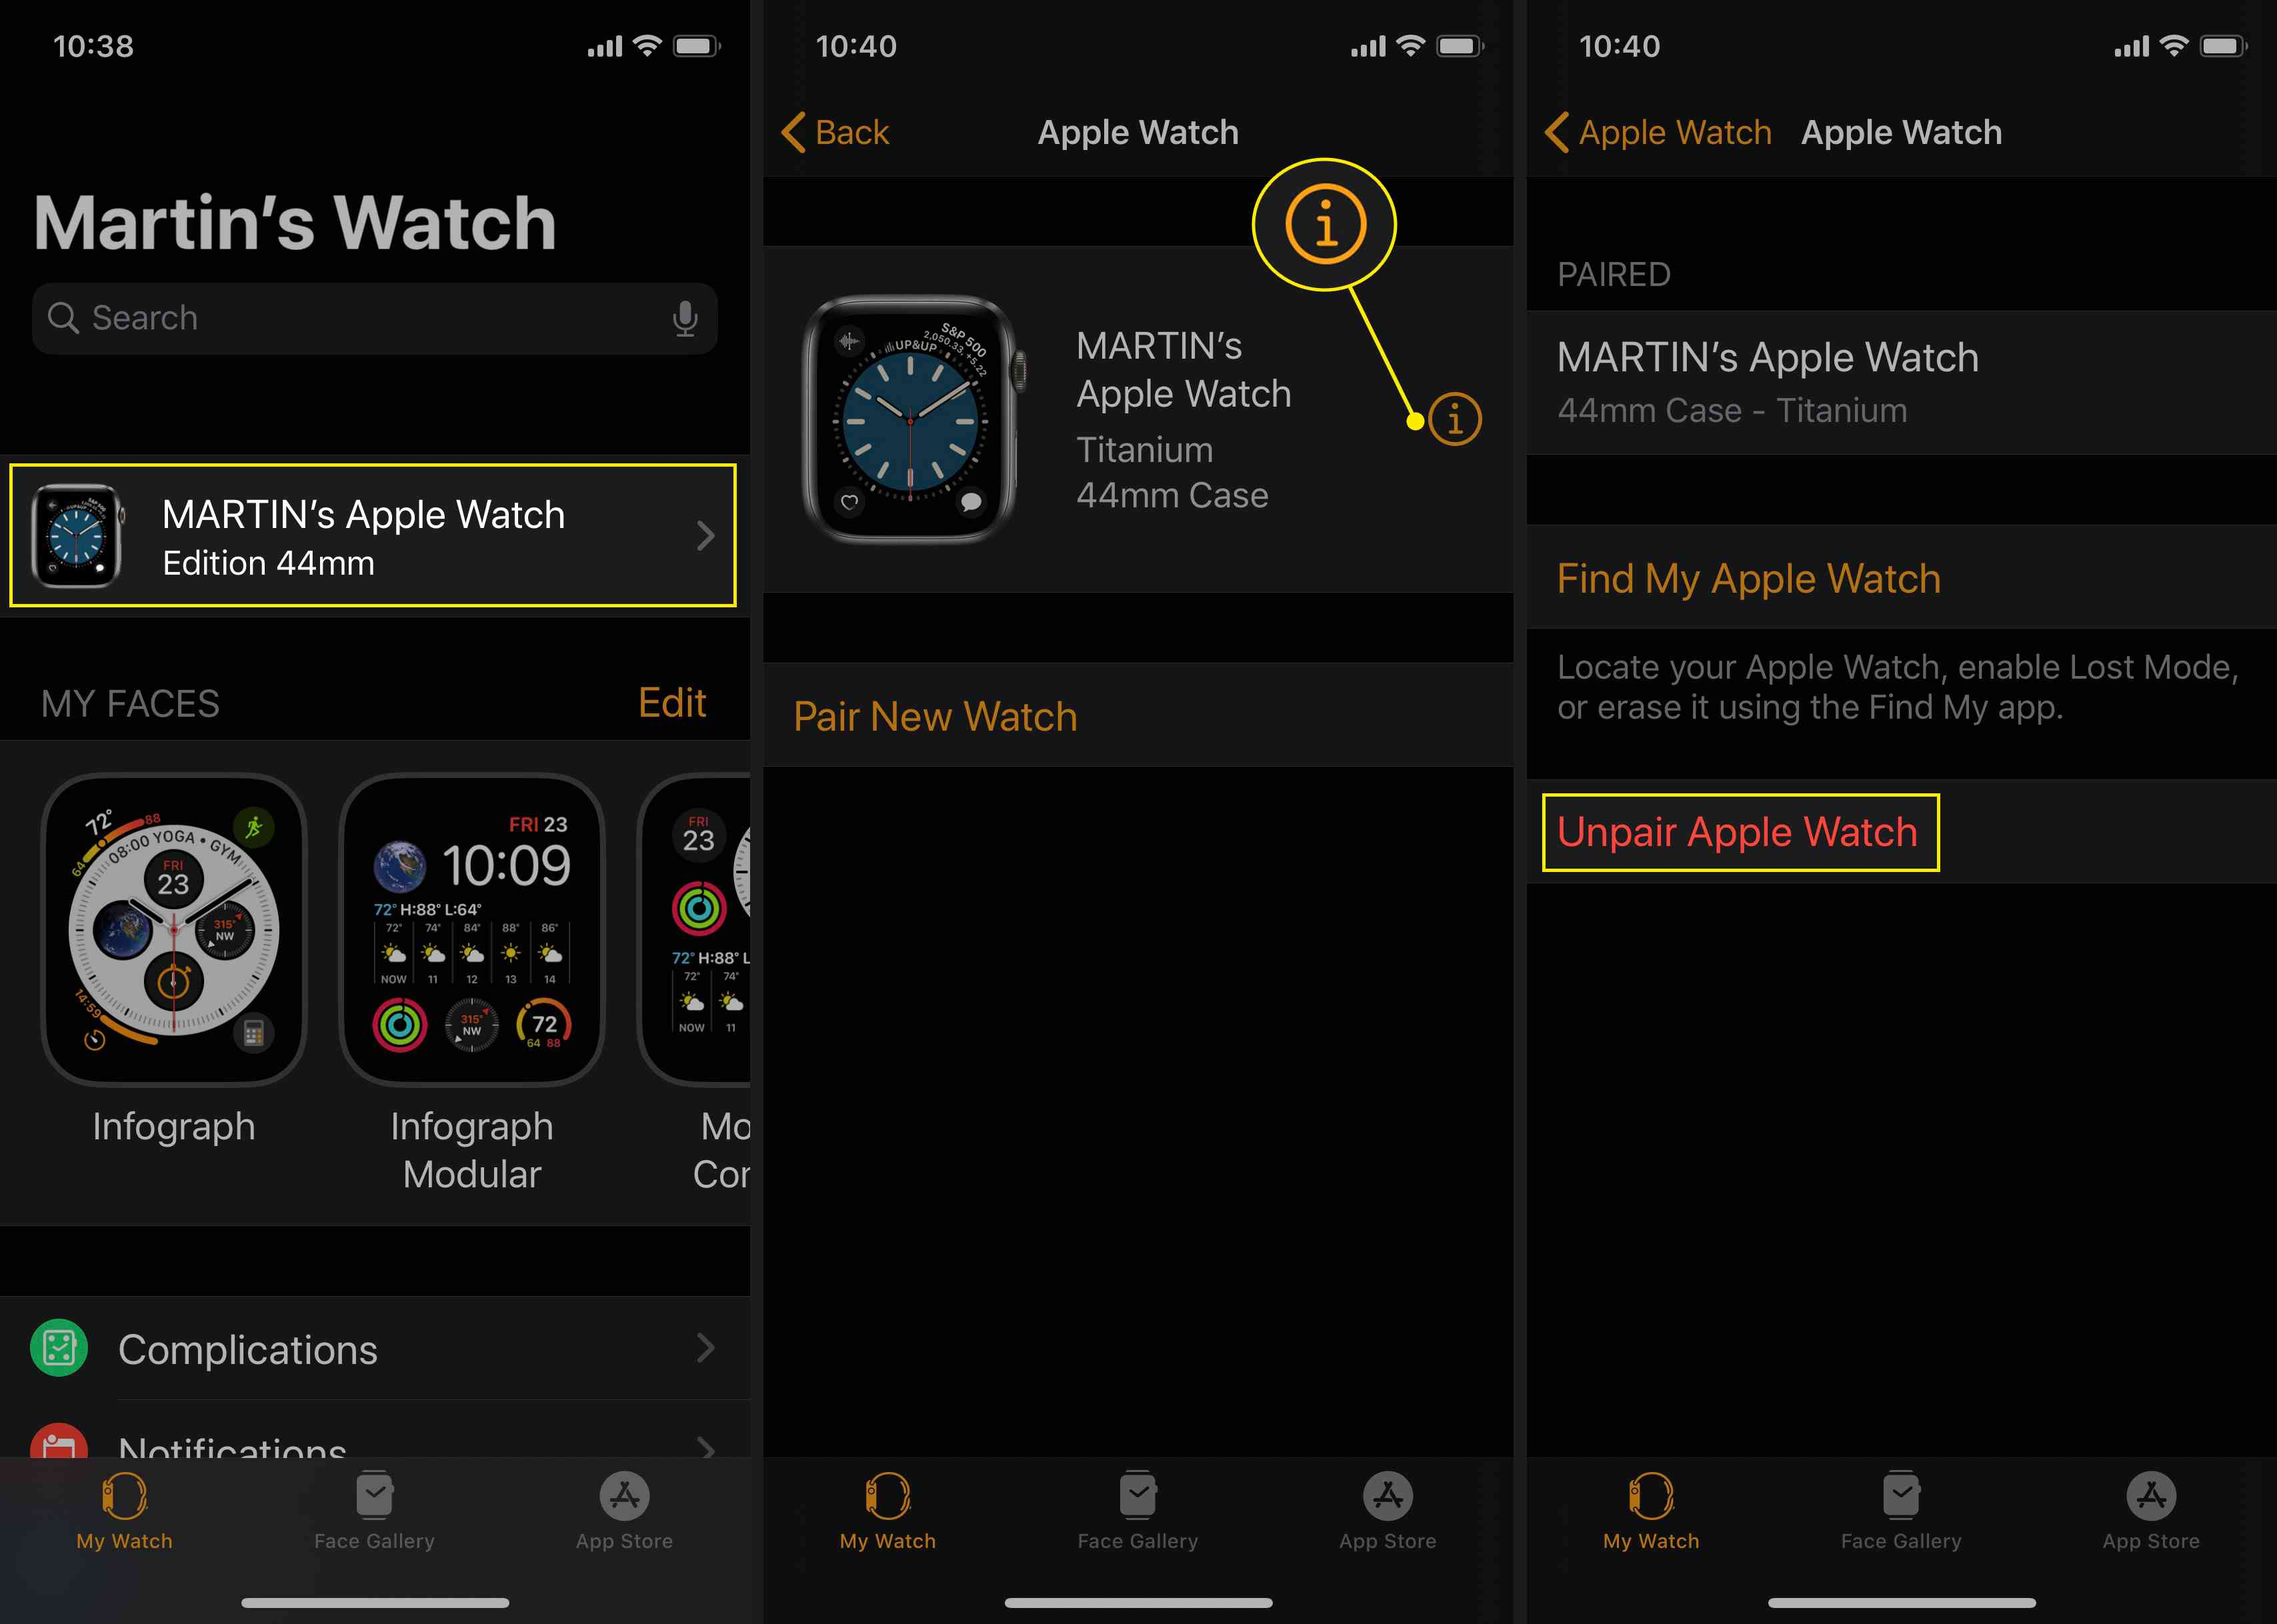 Unpair your Apple Watch to disable Activation Lock